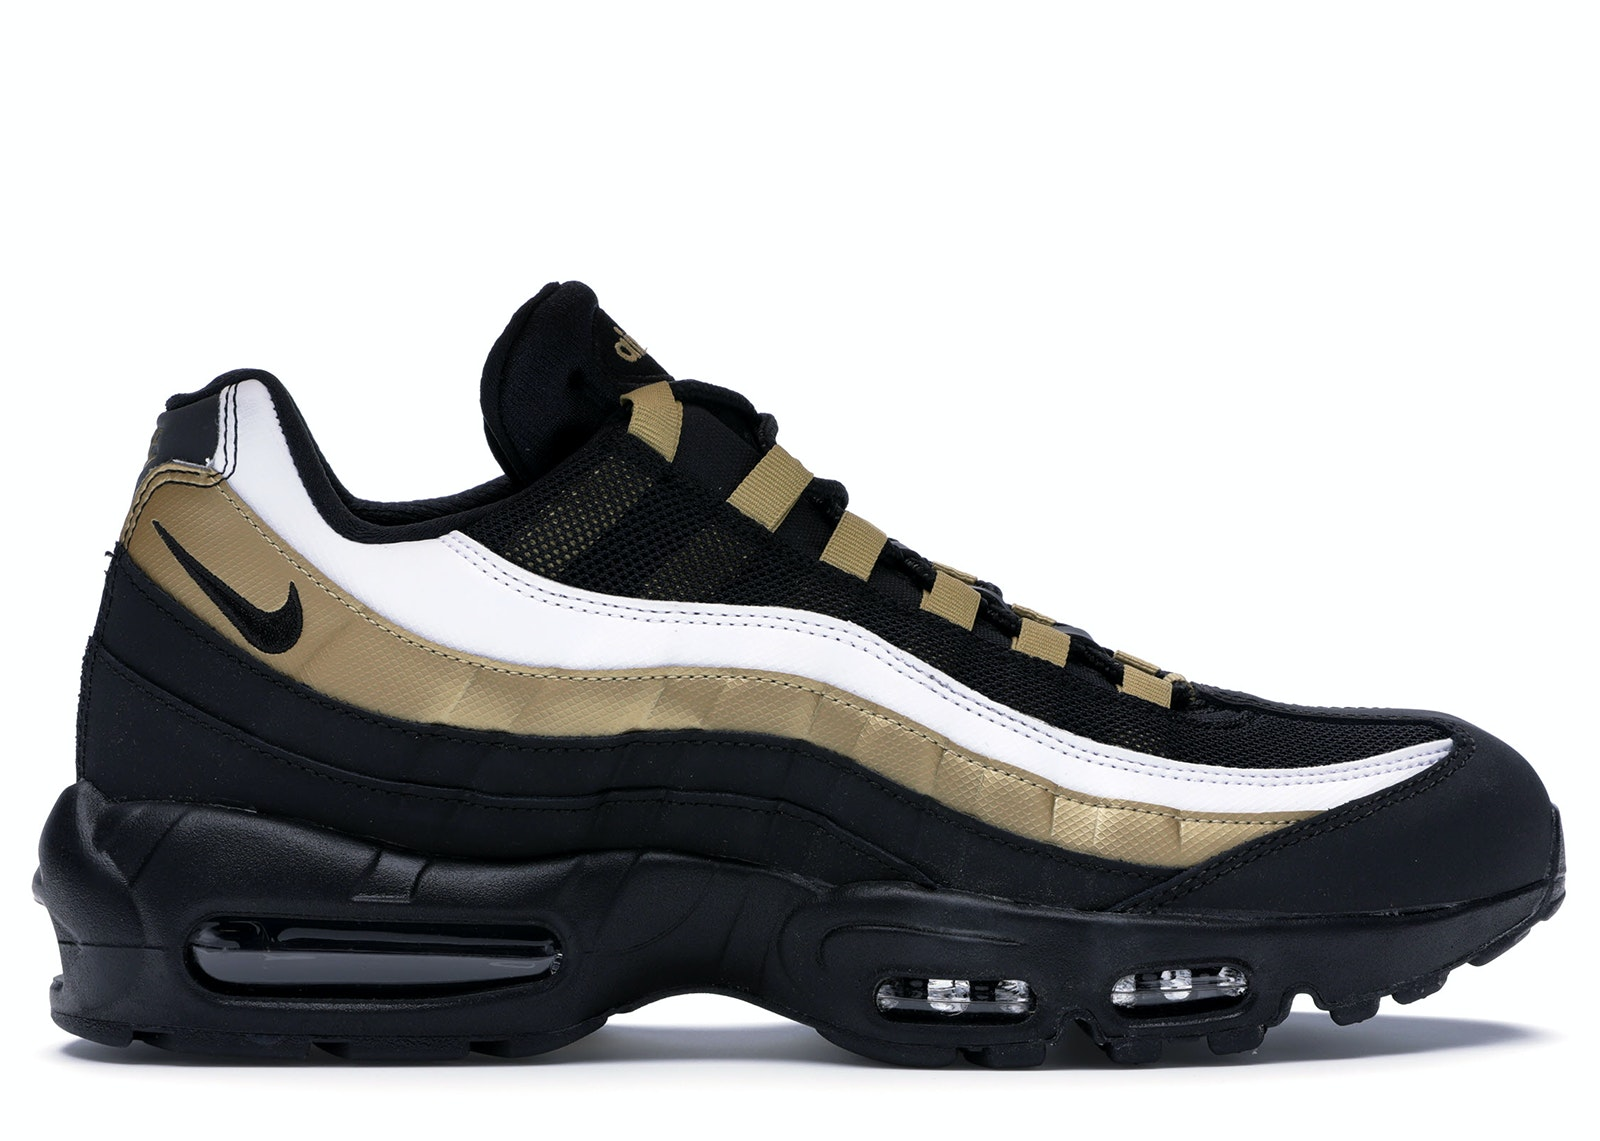 Air Max 95 OG Black Metallic Gold White